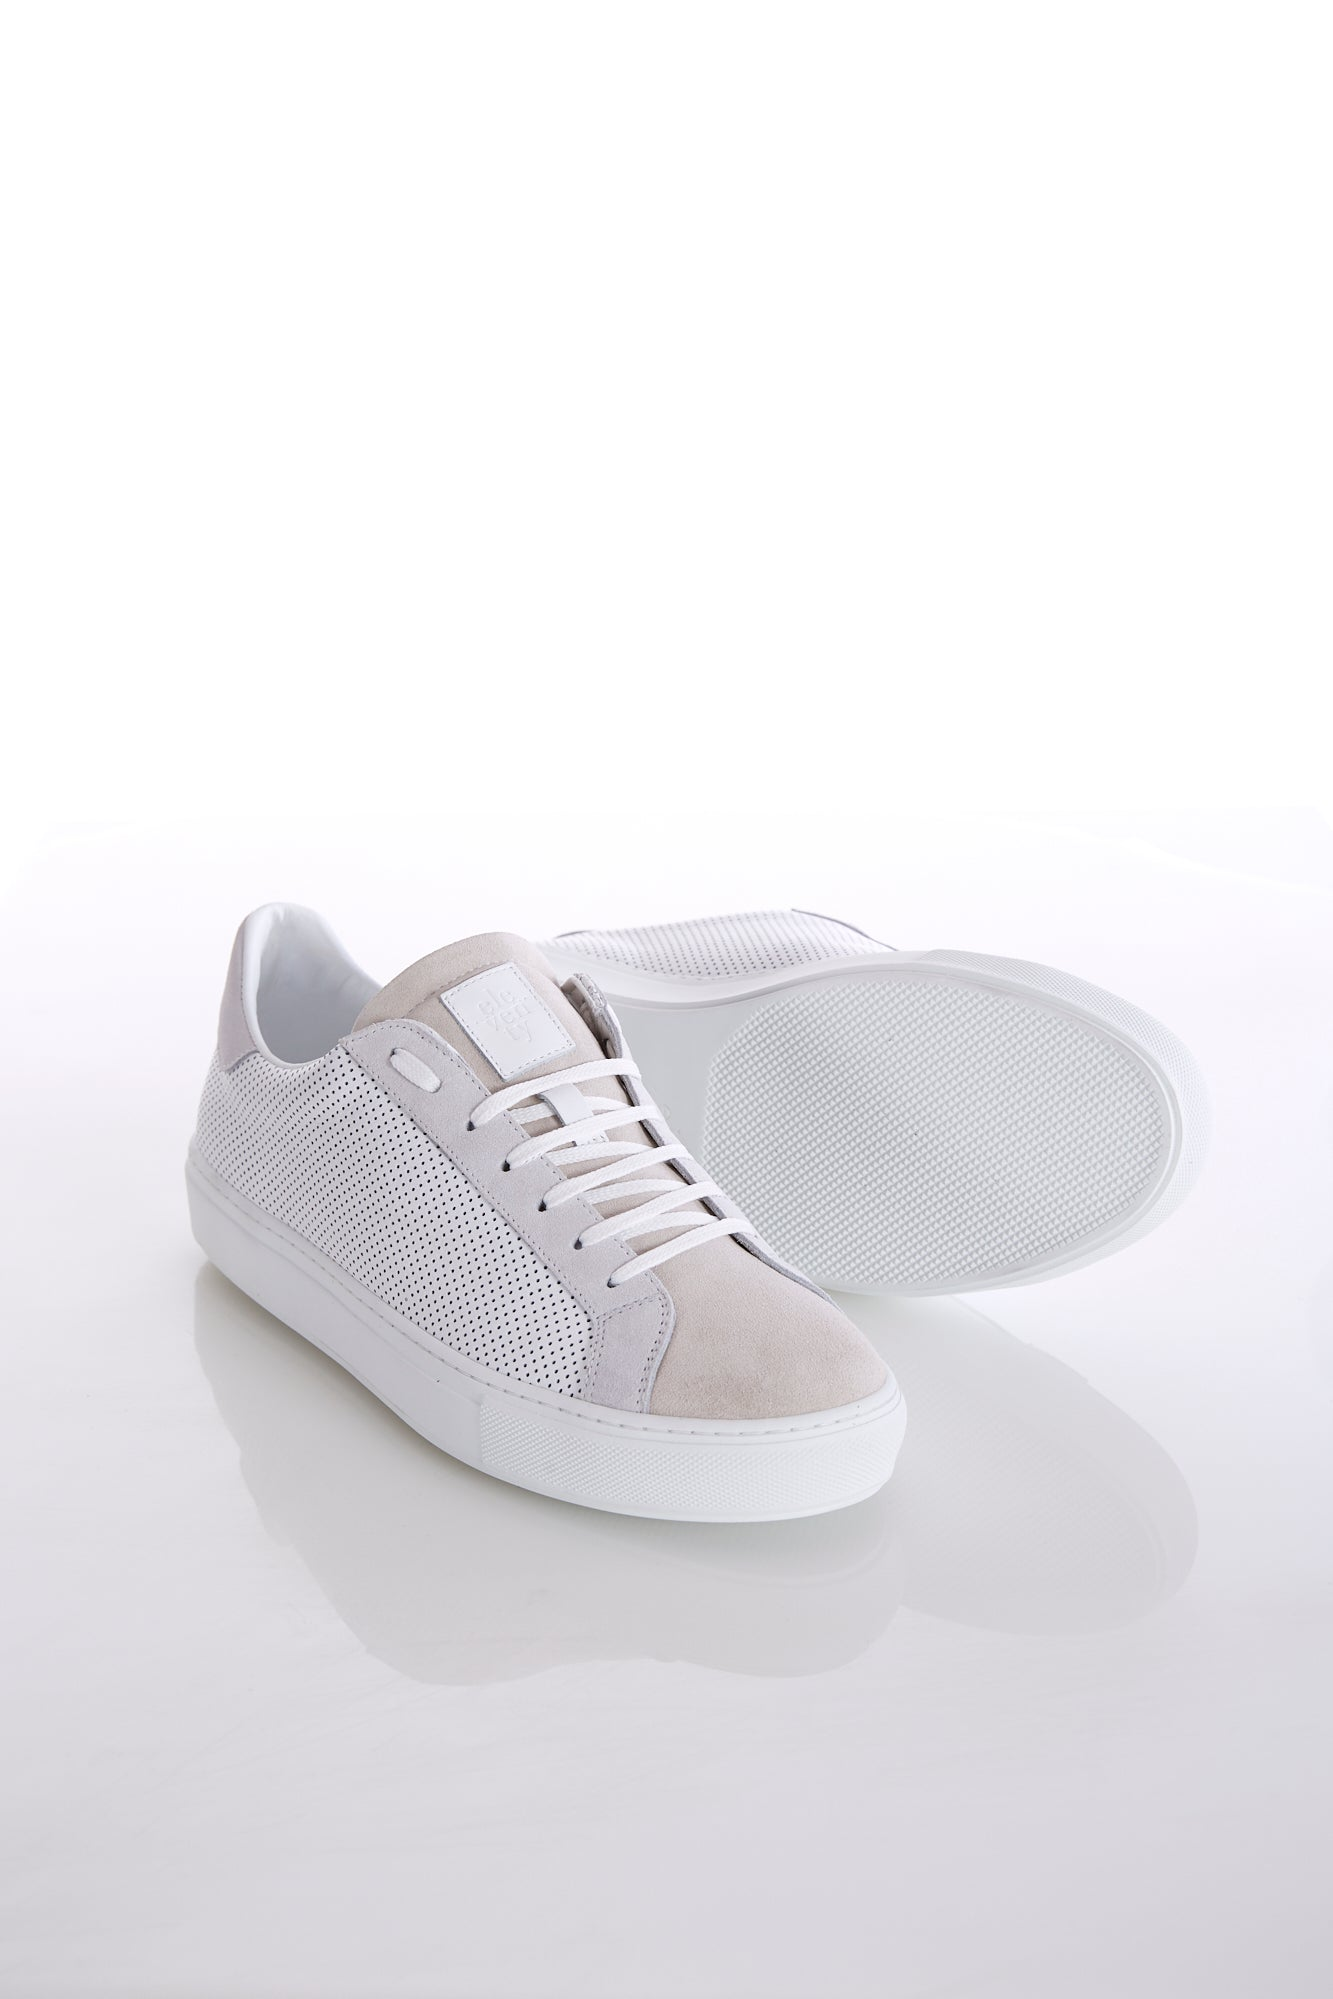 Eleventy White Perforated Leather & Beige Suede Sneaker - Shoes - Eleventy - LALONDE's